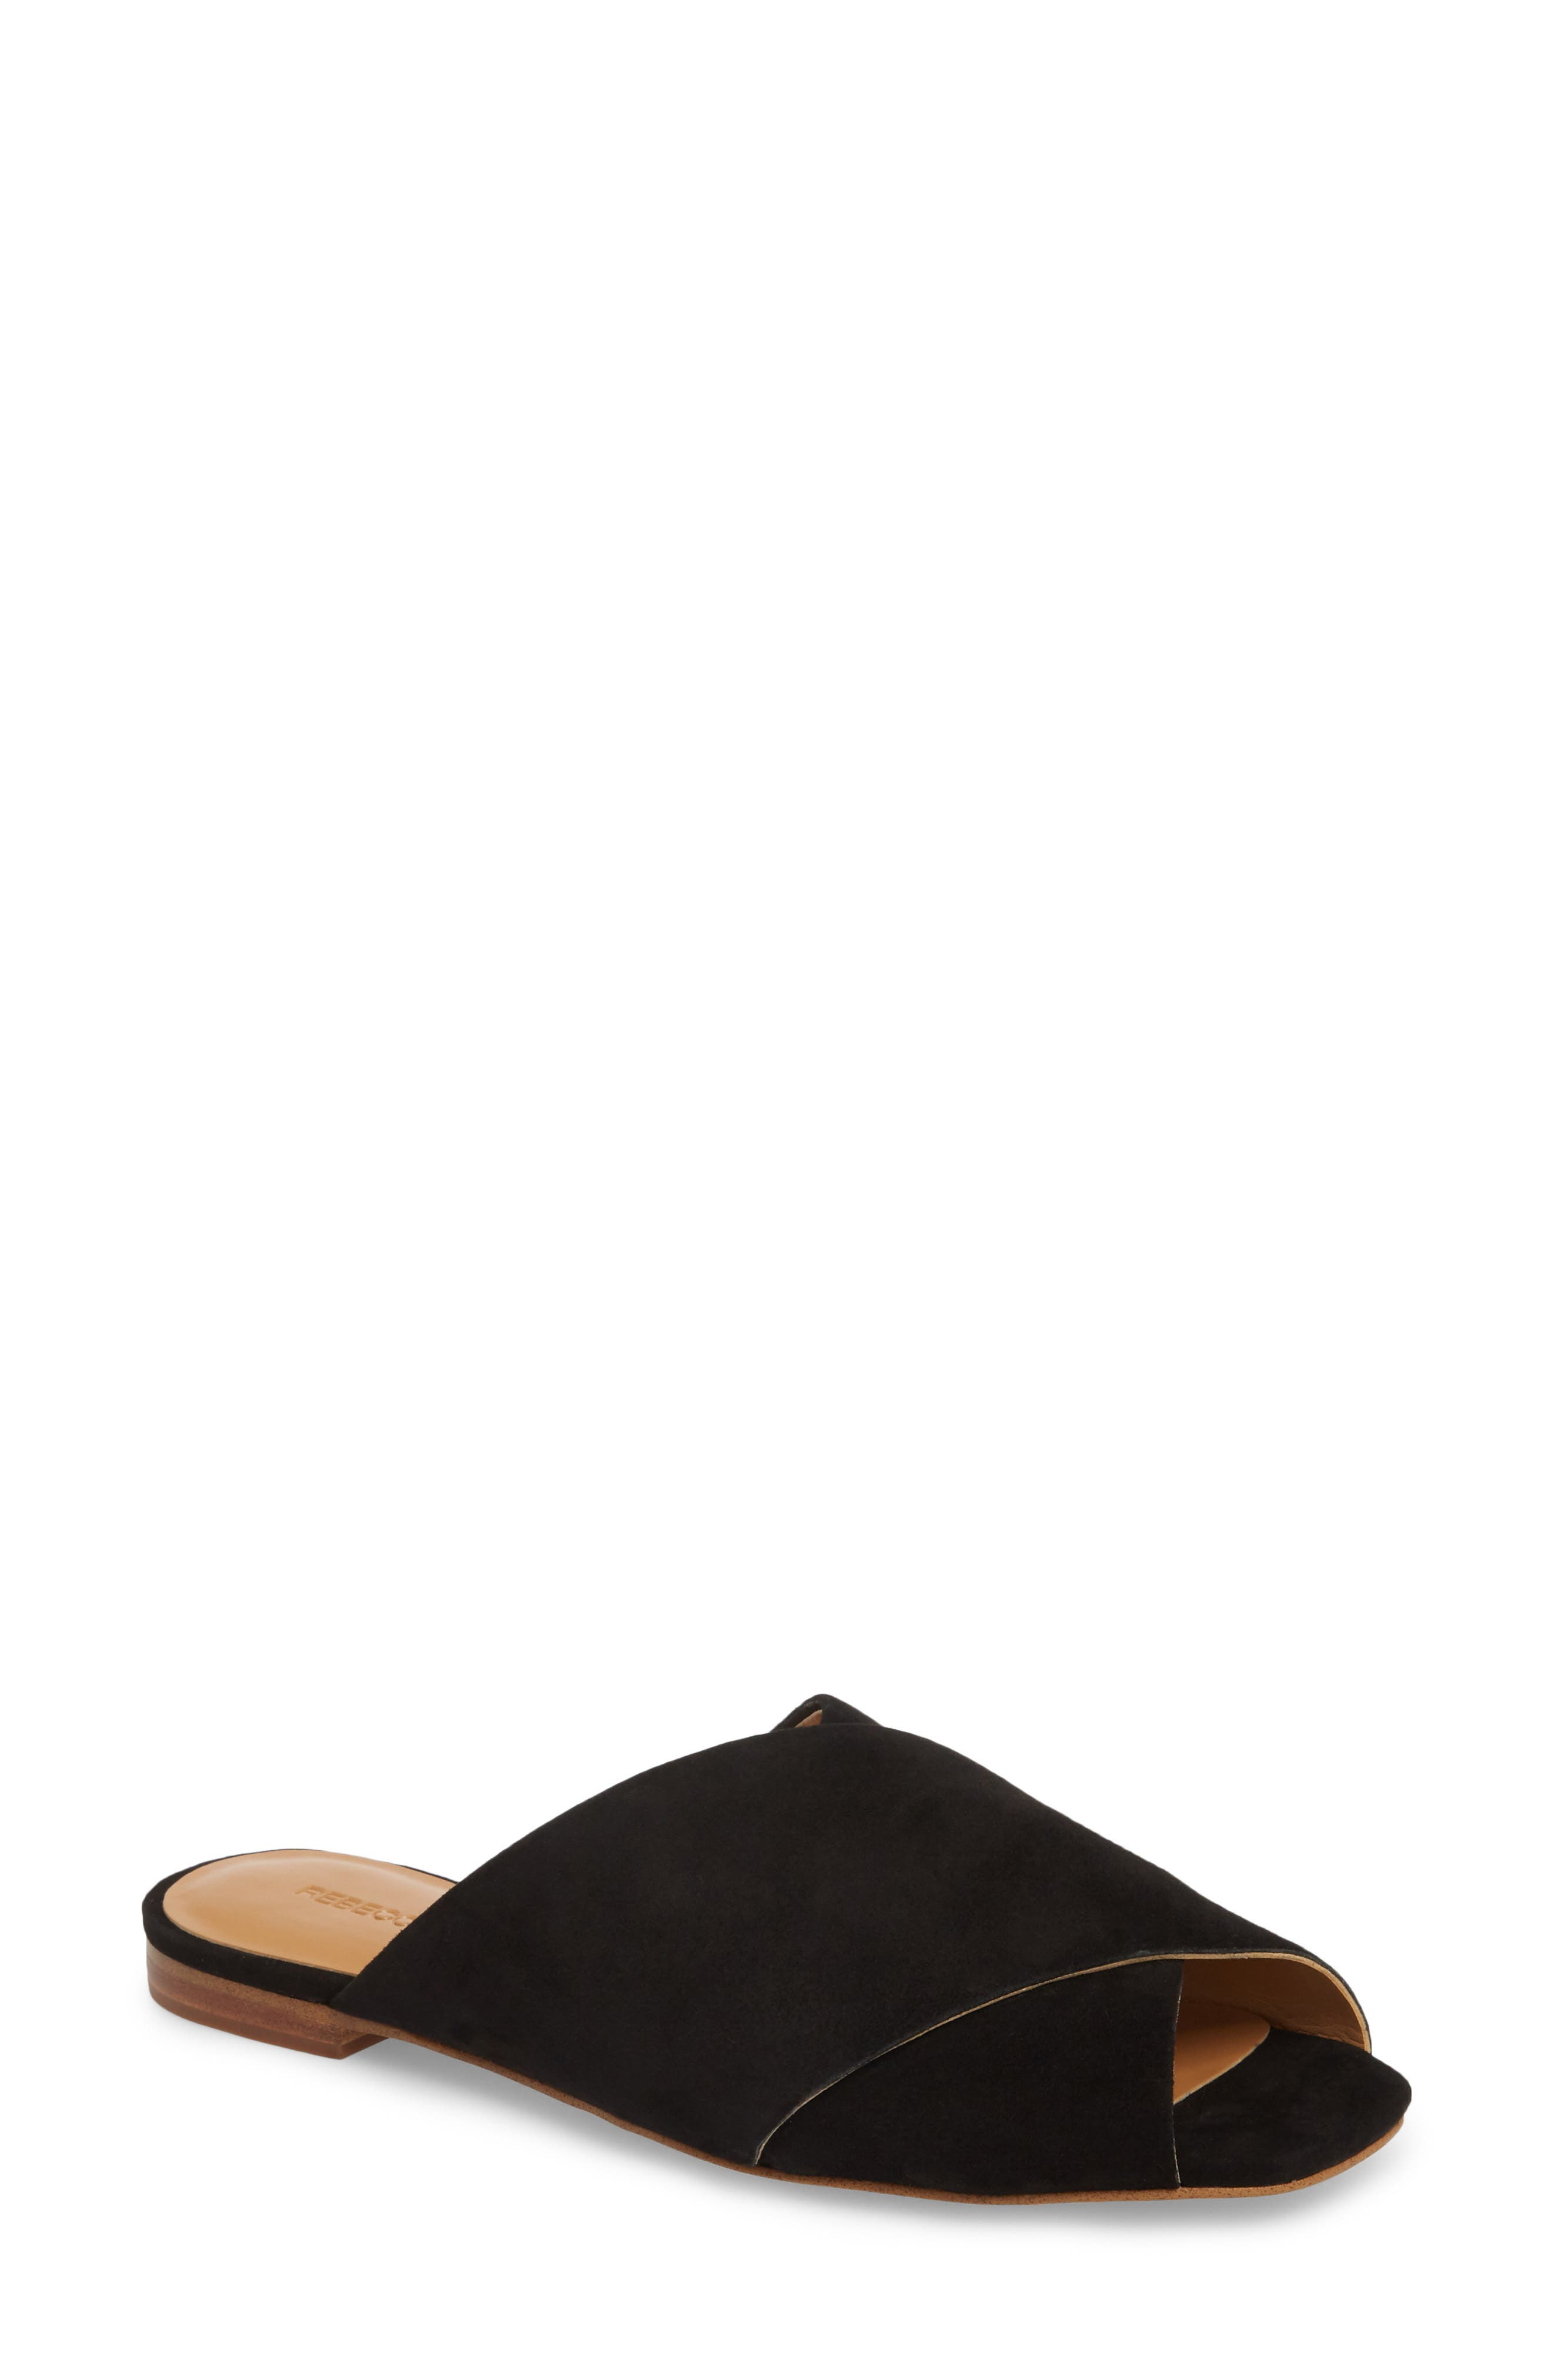 Anden Slide Sandal,                         Main,                         color, BLACK SUEDE